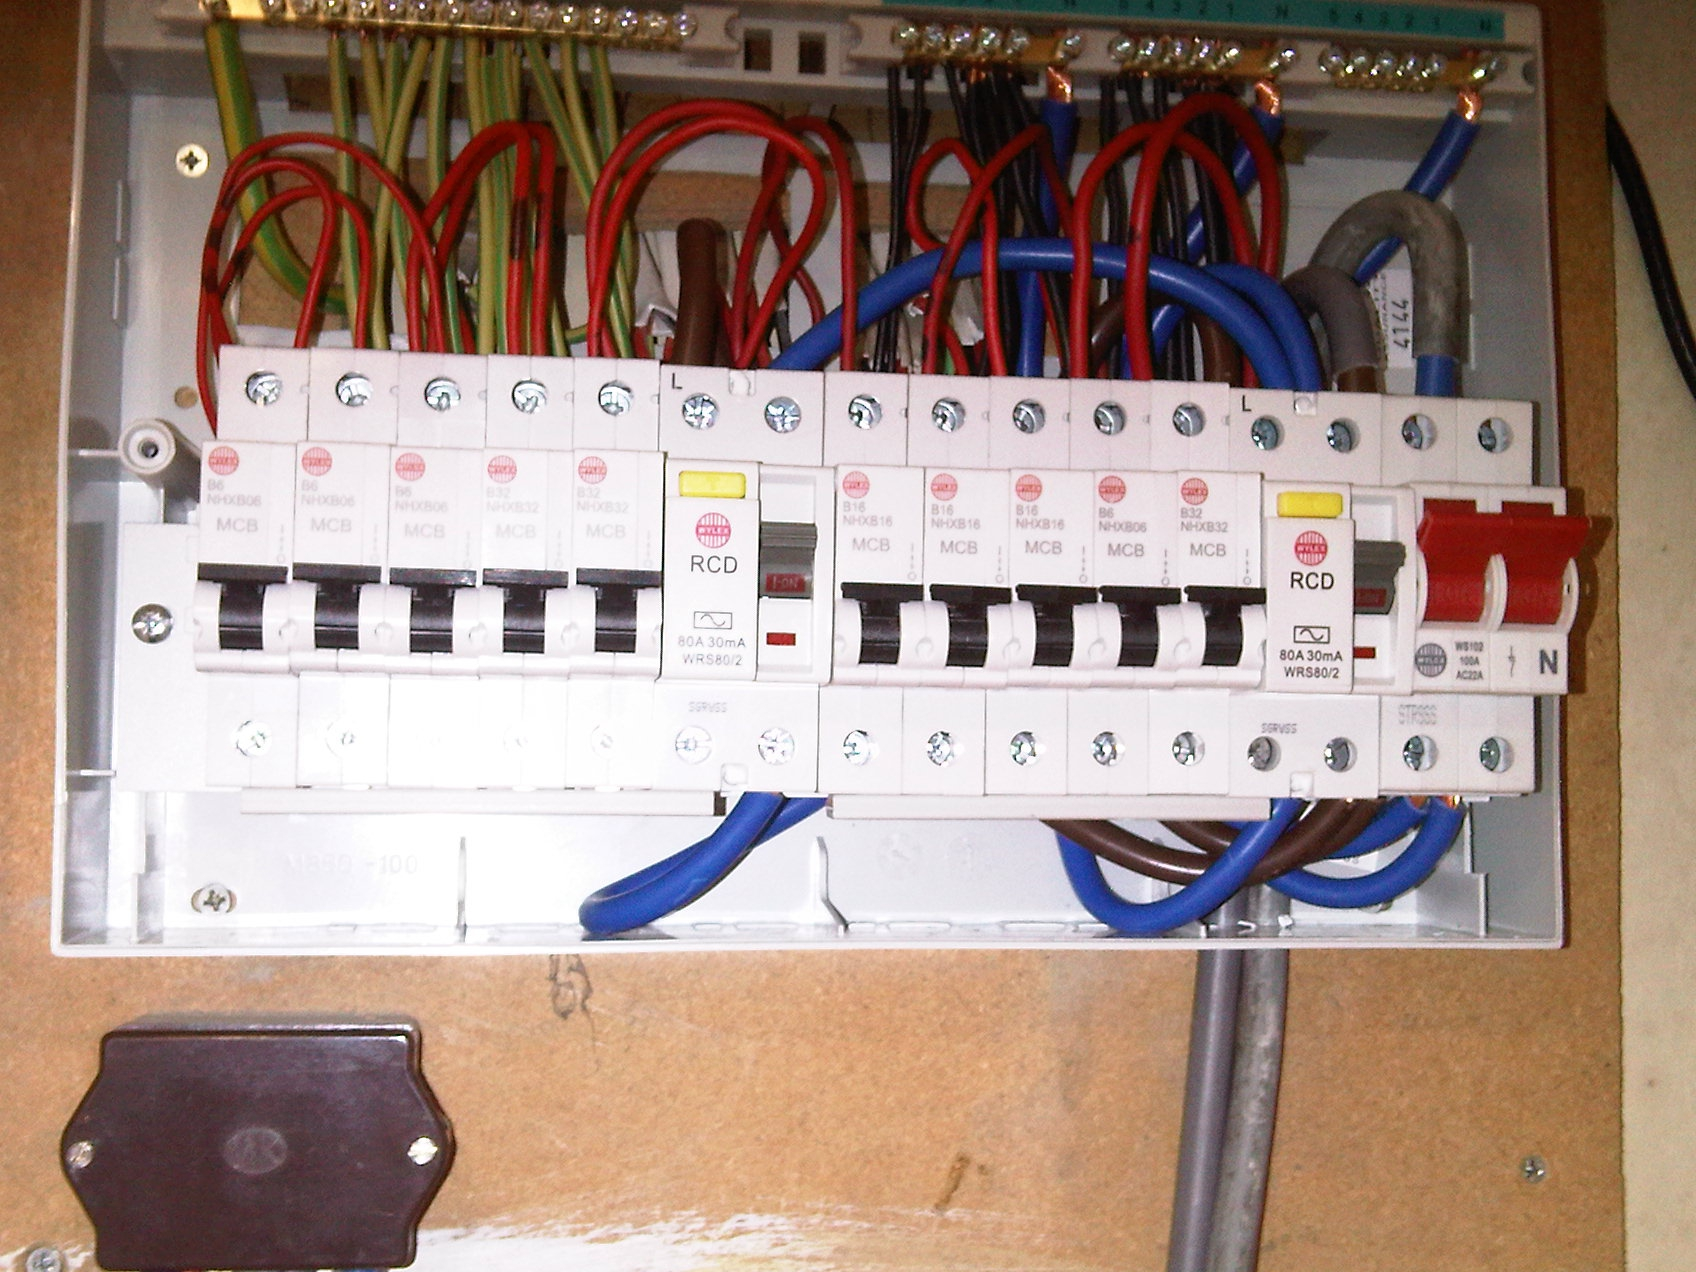 Fusebox 4 mk repair centre notices & news how to change fuse in main fuse box at crackthecode.co